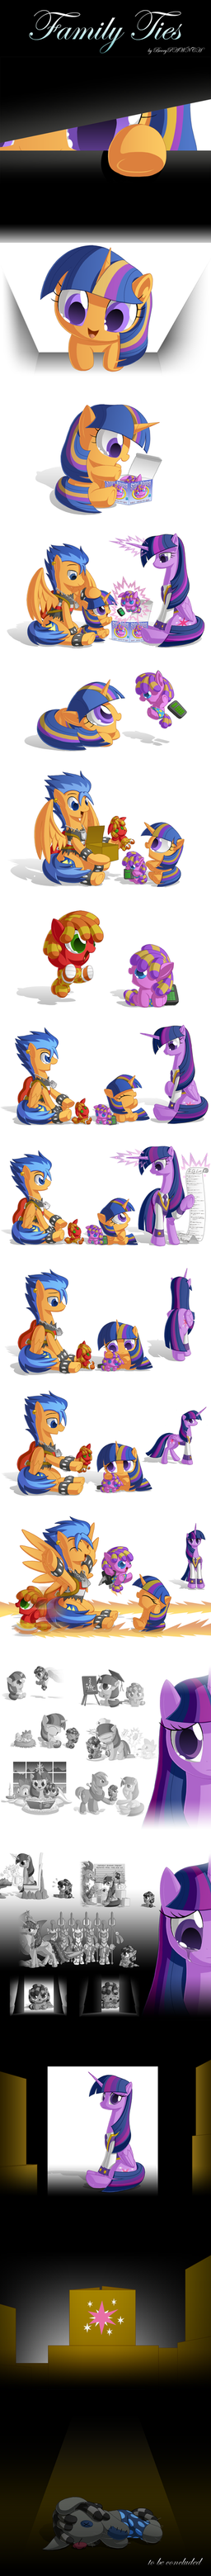 Growing Pains II: Family Ties by BerryPAWNCH